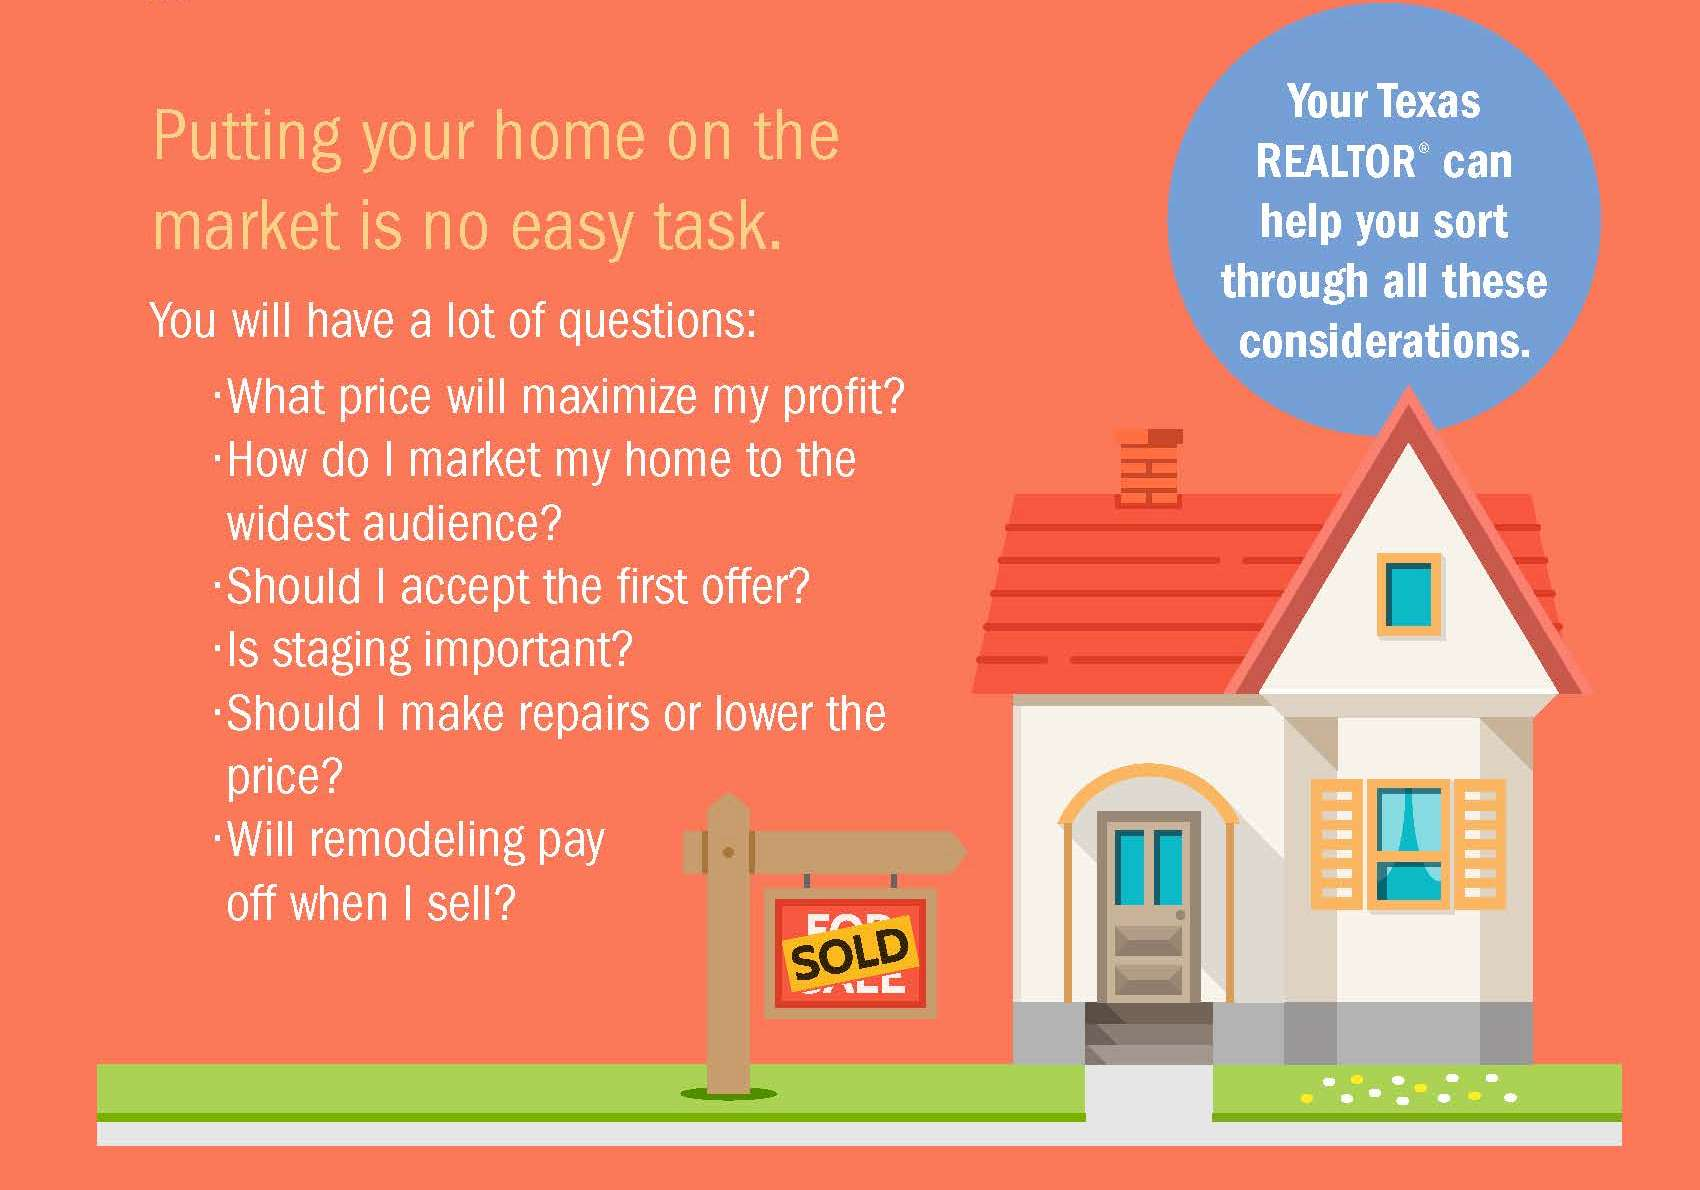 Tips For Sellers From Texas Realtors